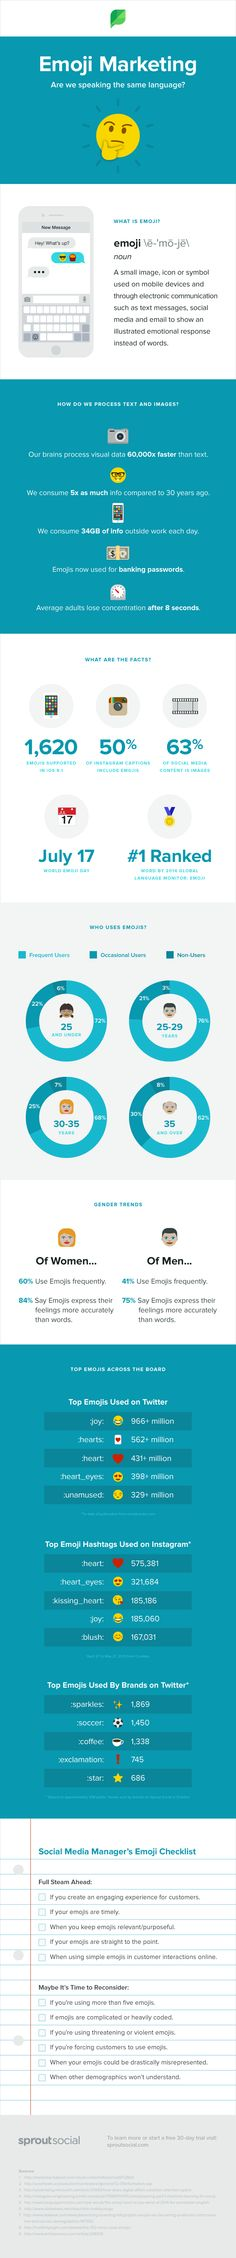 Emoji have become a huge part of modern communication. This infographic breaks down the databehind the growth of emoji use, why they're so popular, and which are the most commonly used.